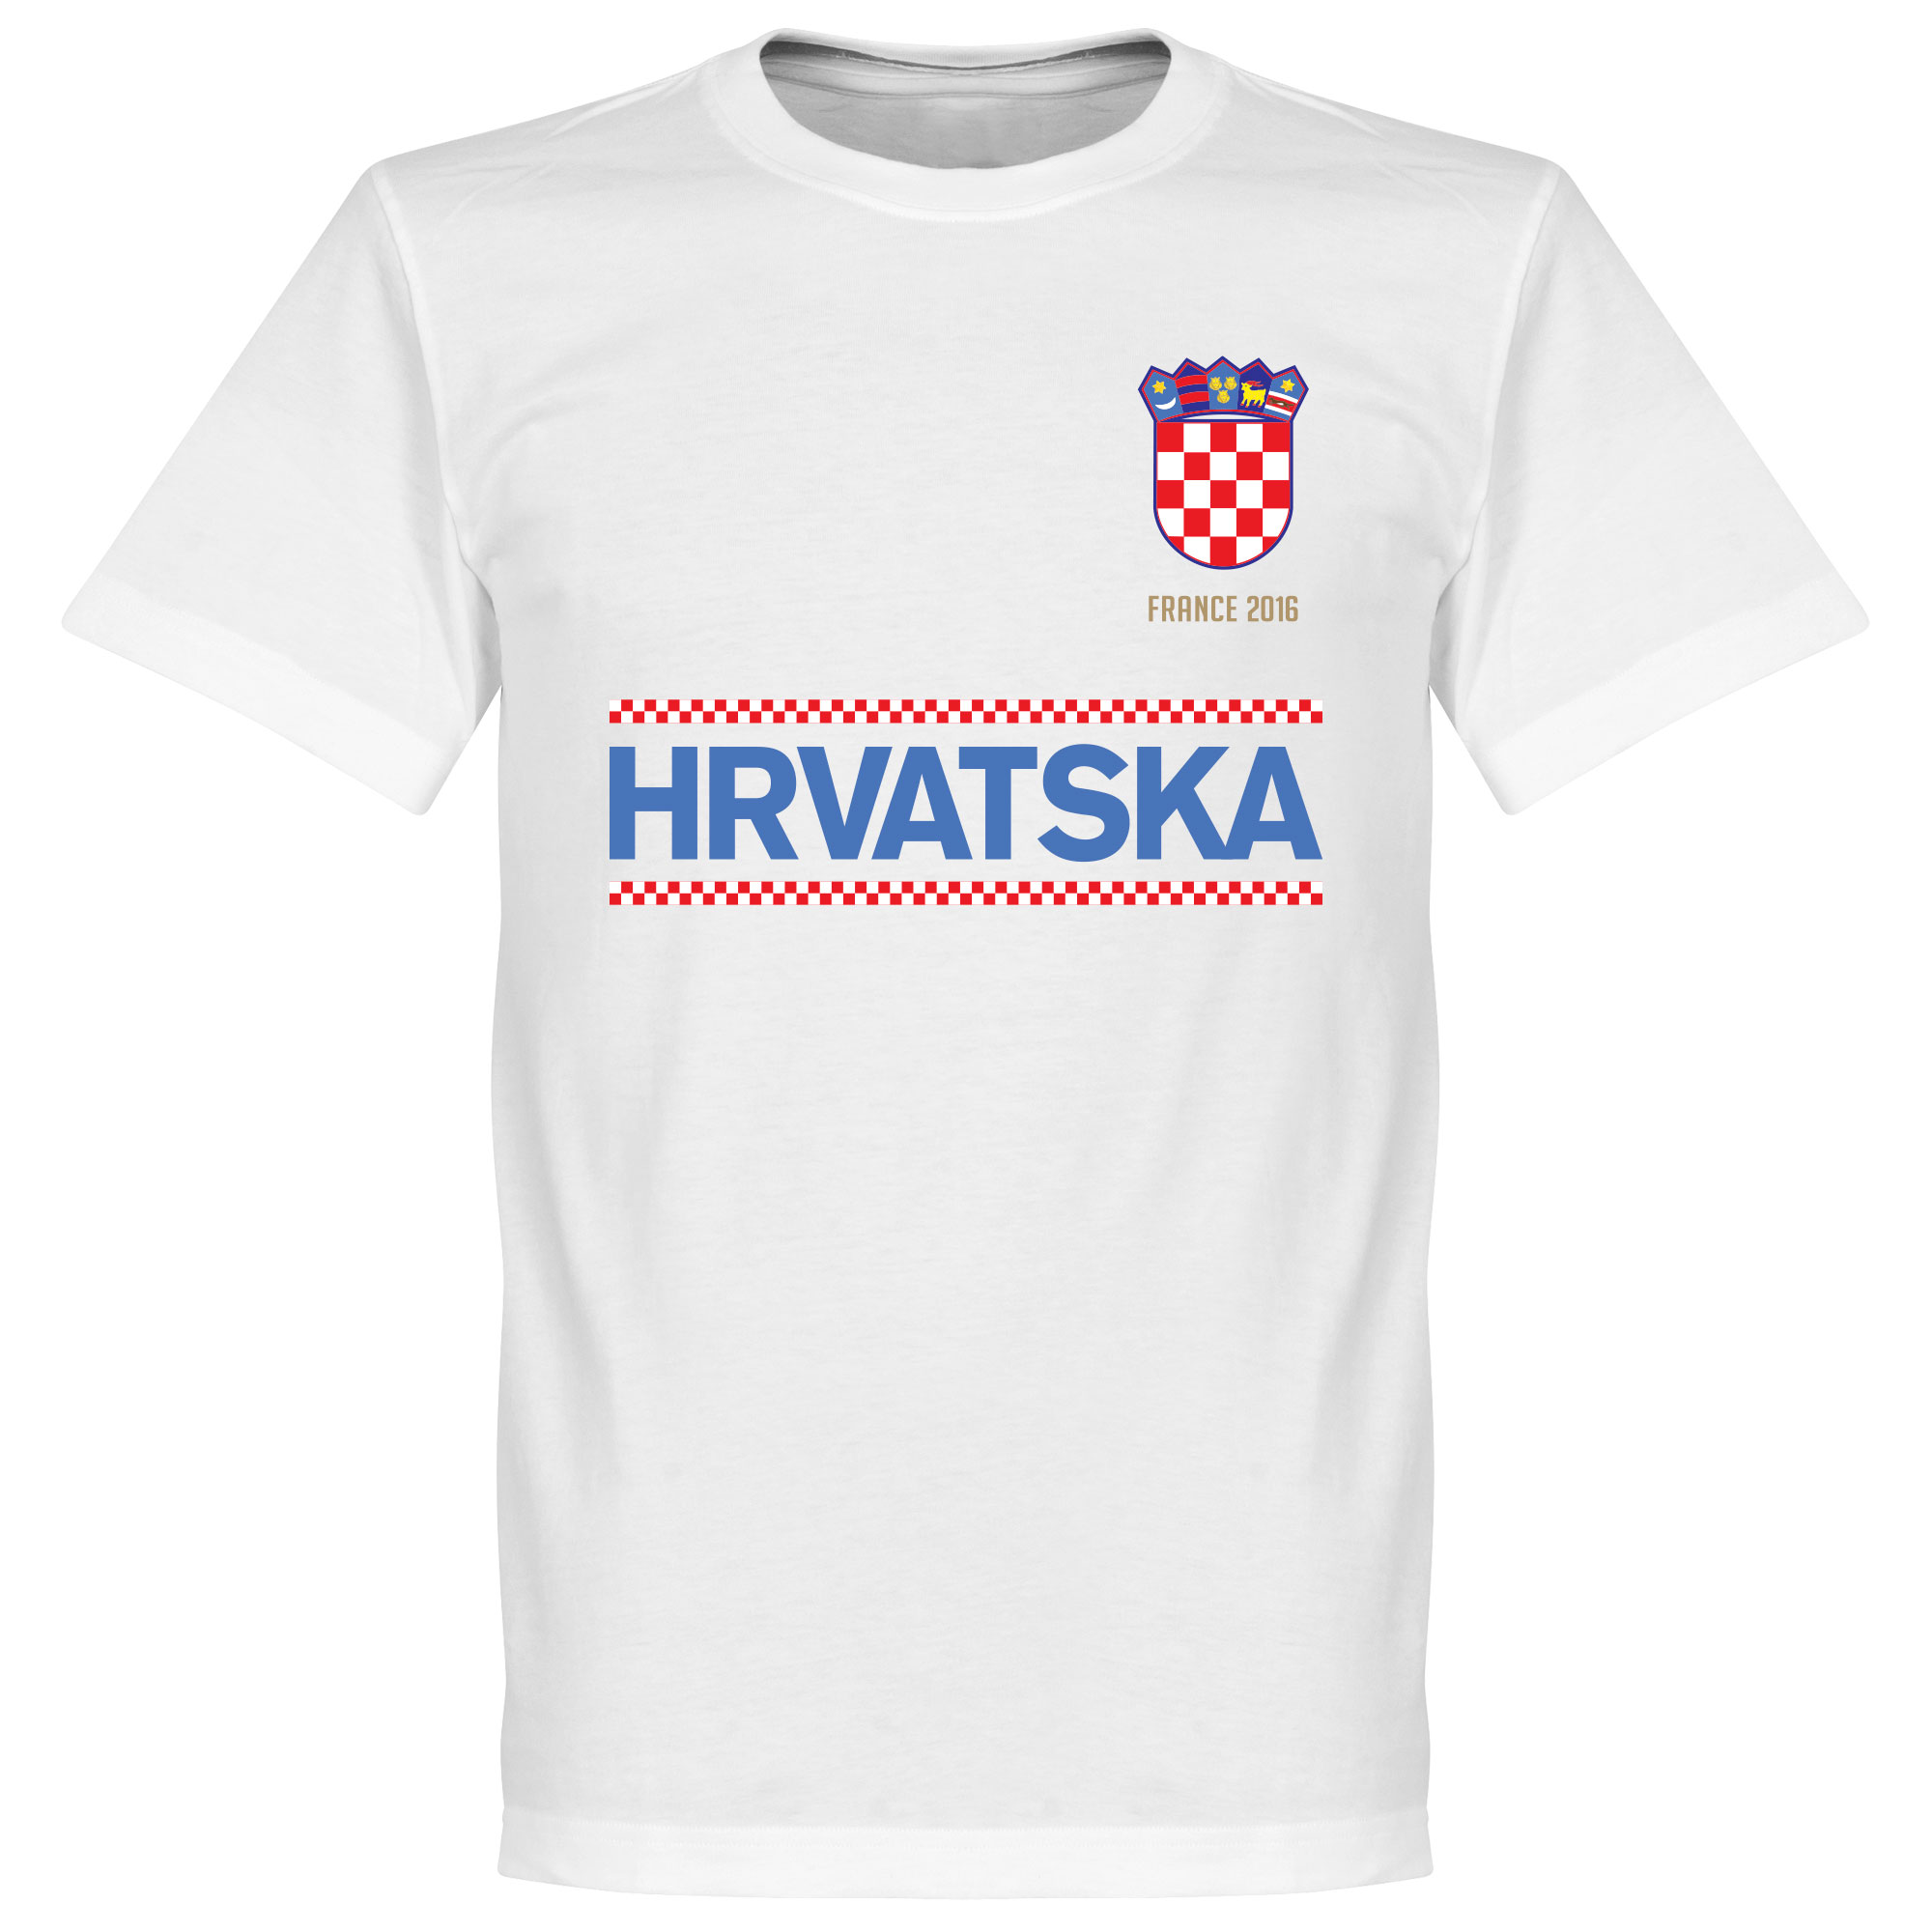 Croatia Team Tee - White - XS